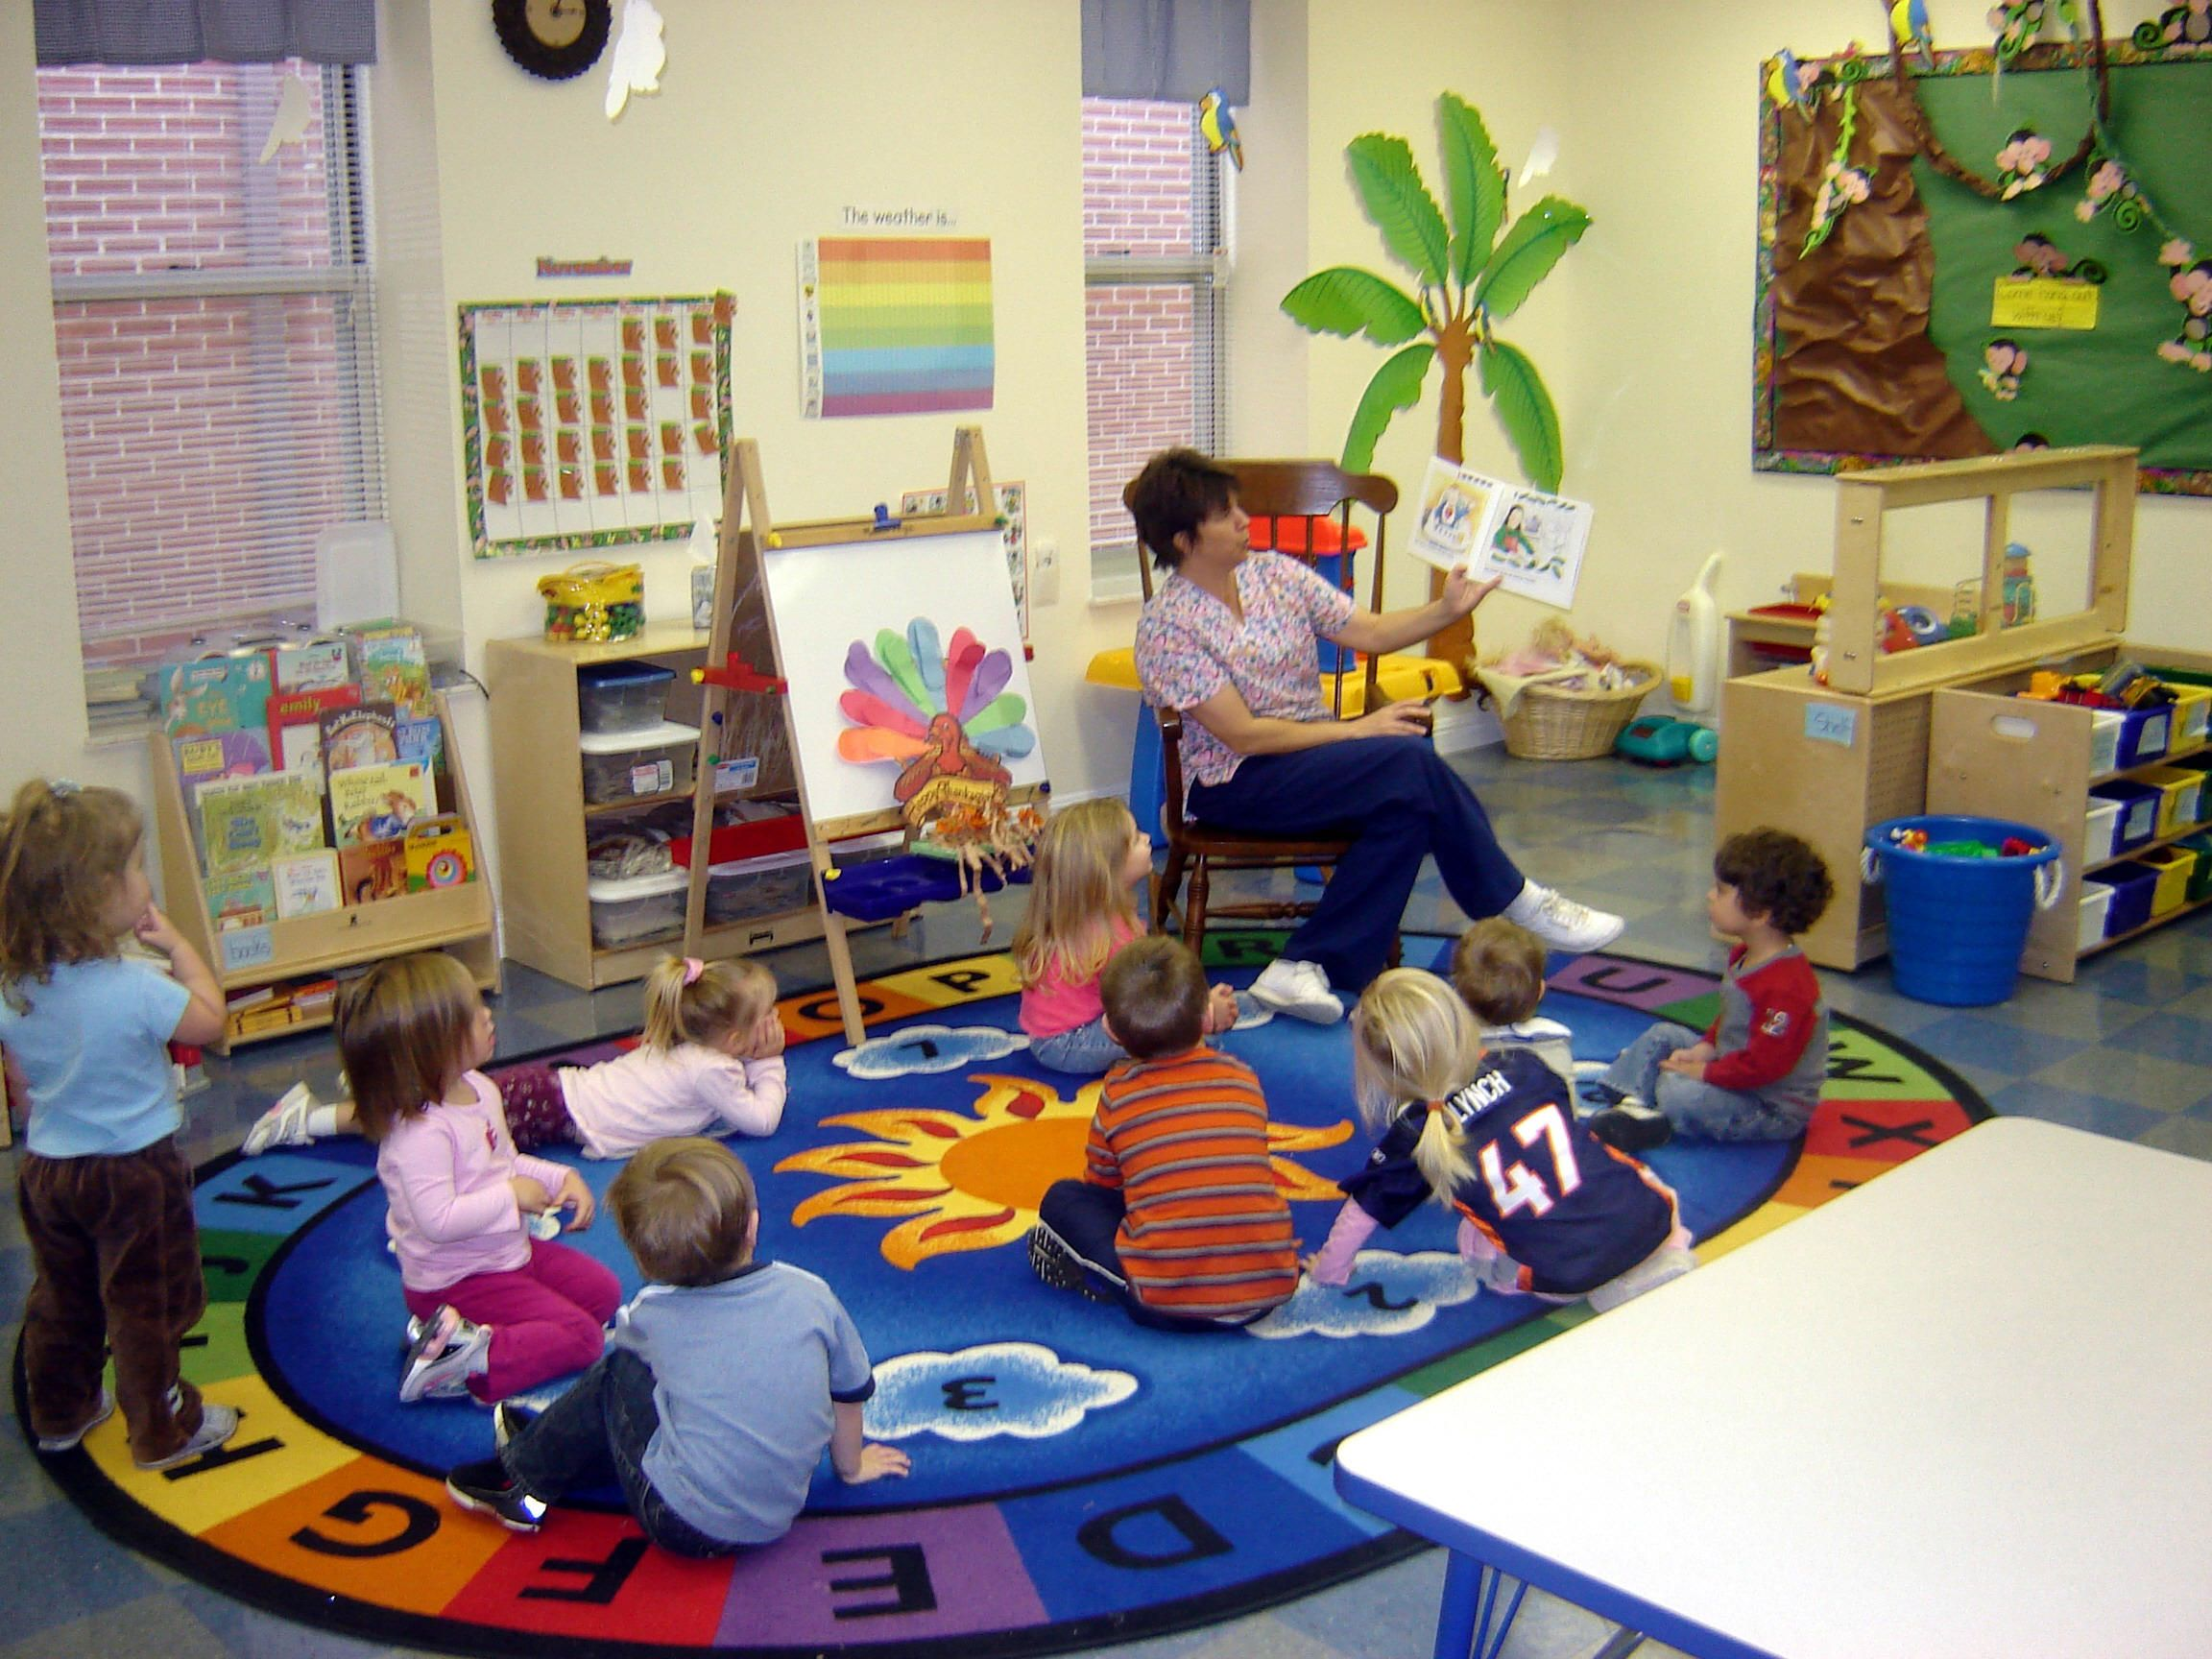 Best paint colors for preschool classrooms - Classroom Design Ideas Preschool Put Attention Much On The Colors Size And Shapes The Key To Make Classroom Design Ideas Preschool Are Size Colors And